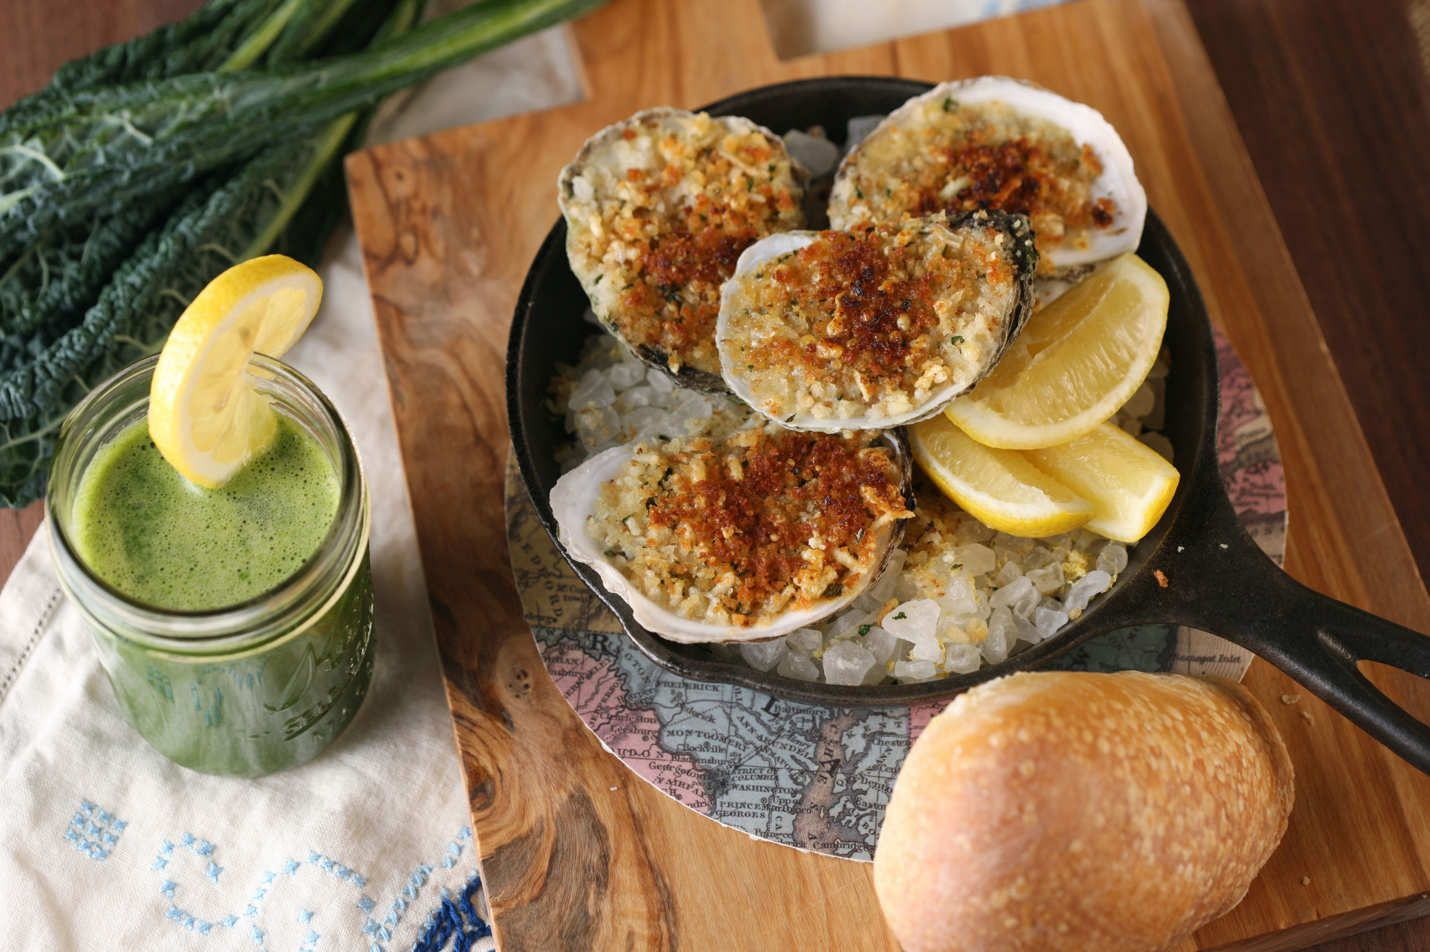 oysters + more in nyc | Oyster roast, Oysters, Cooked oysters